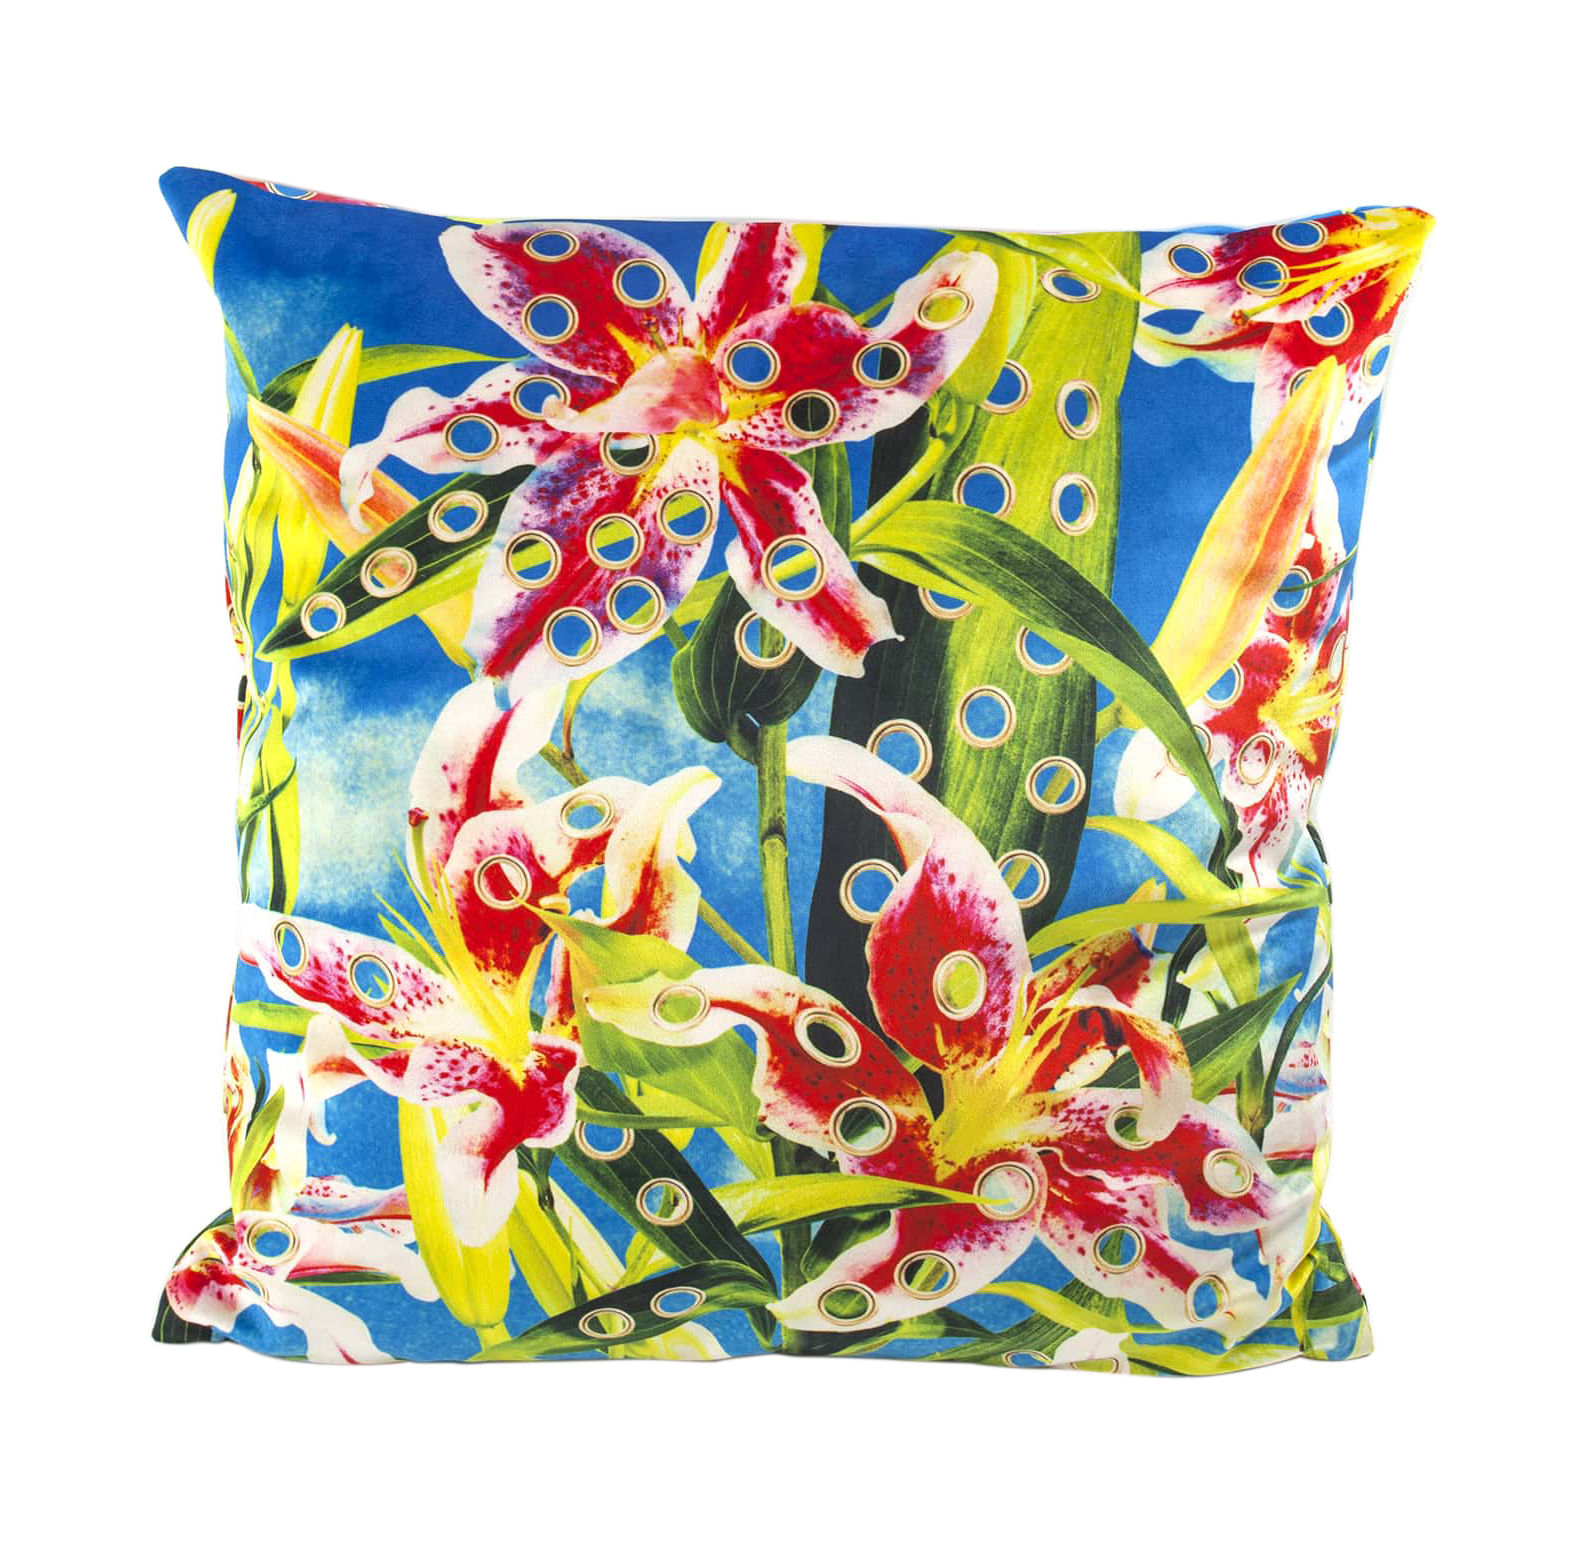 Decoration - Cushions & Poufs - Toiletpaper Cushion - / Flower with holes - 50 x 50 cm by Seletti - Flower with holes / Turquoise - Feathers, Polyester fabric